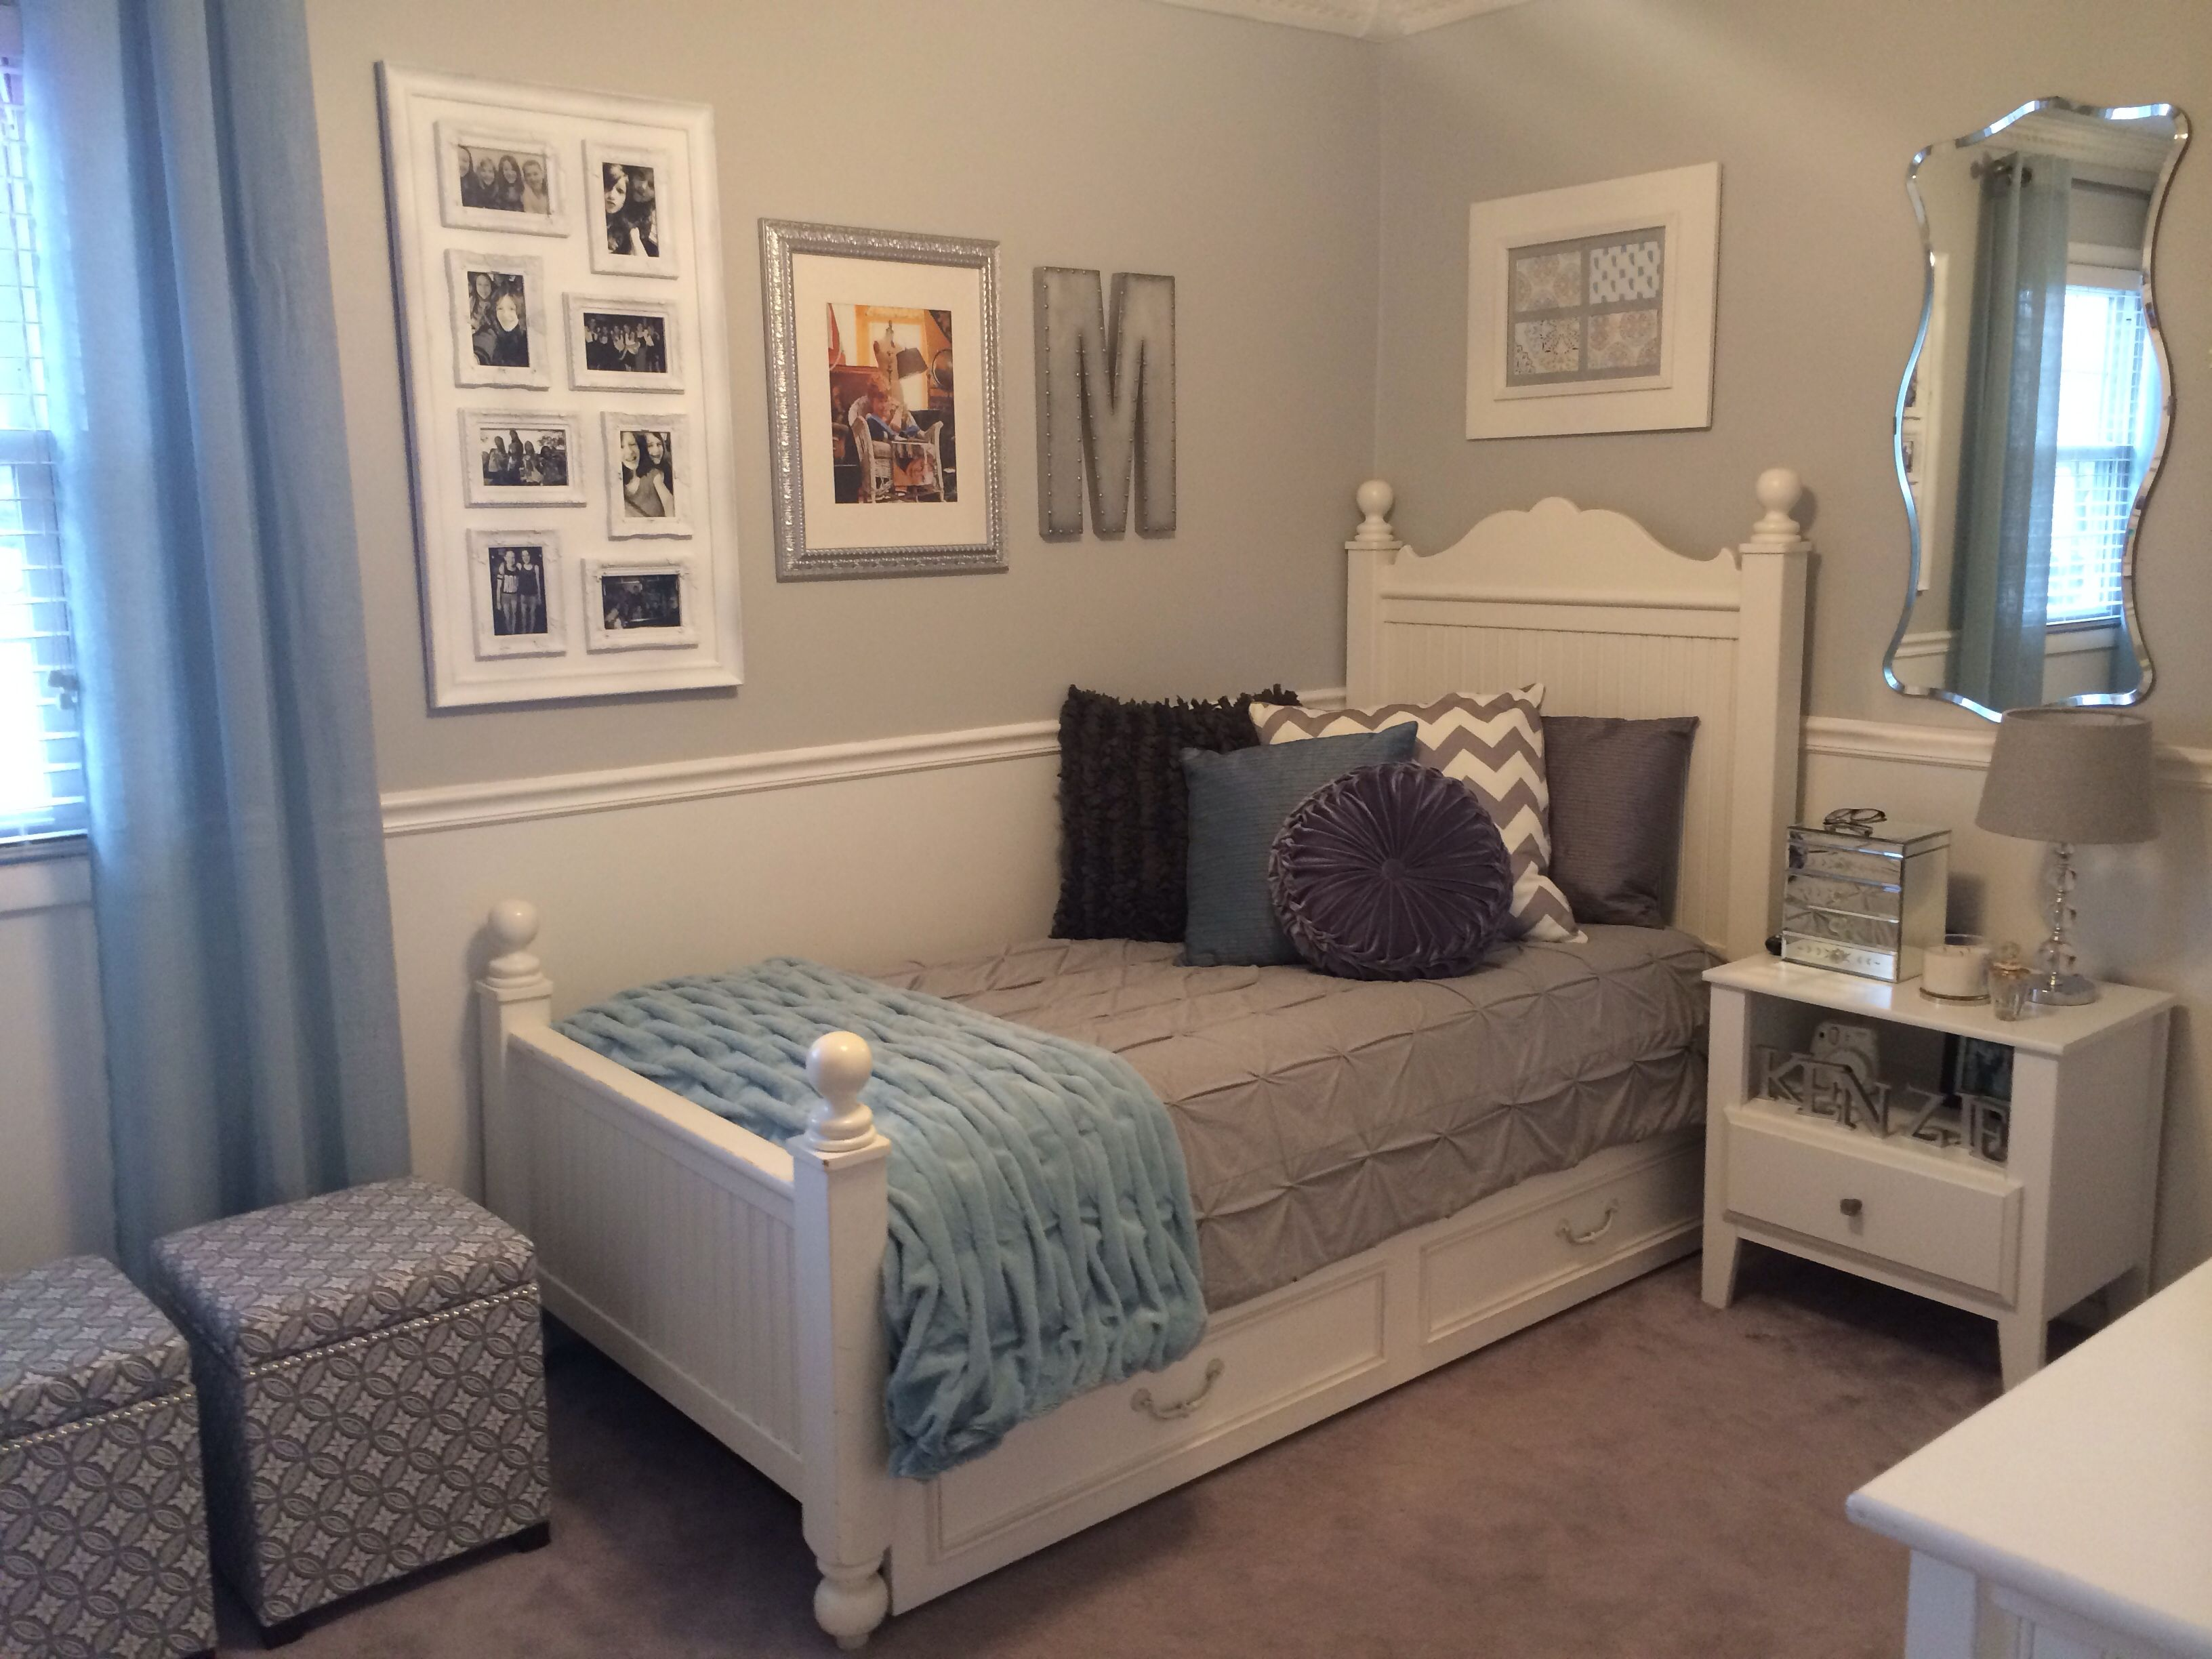 Teen Girl 39 S Room Walls Are Sherwin Williams Passive For The Home Pinterest